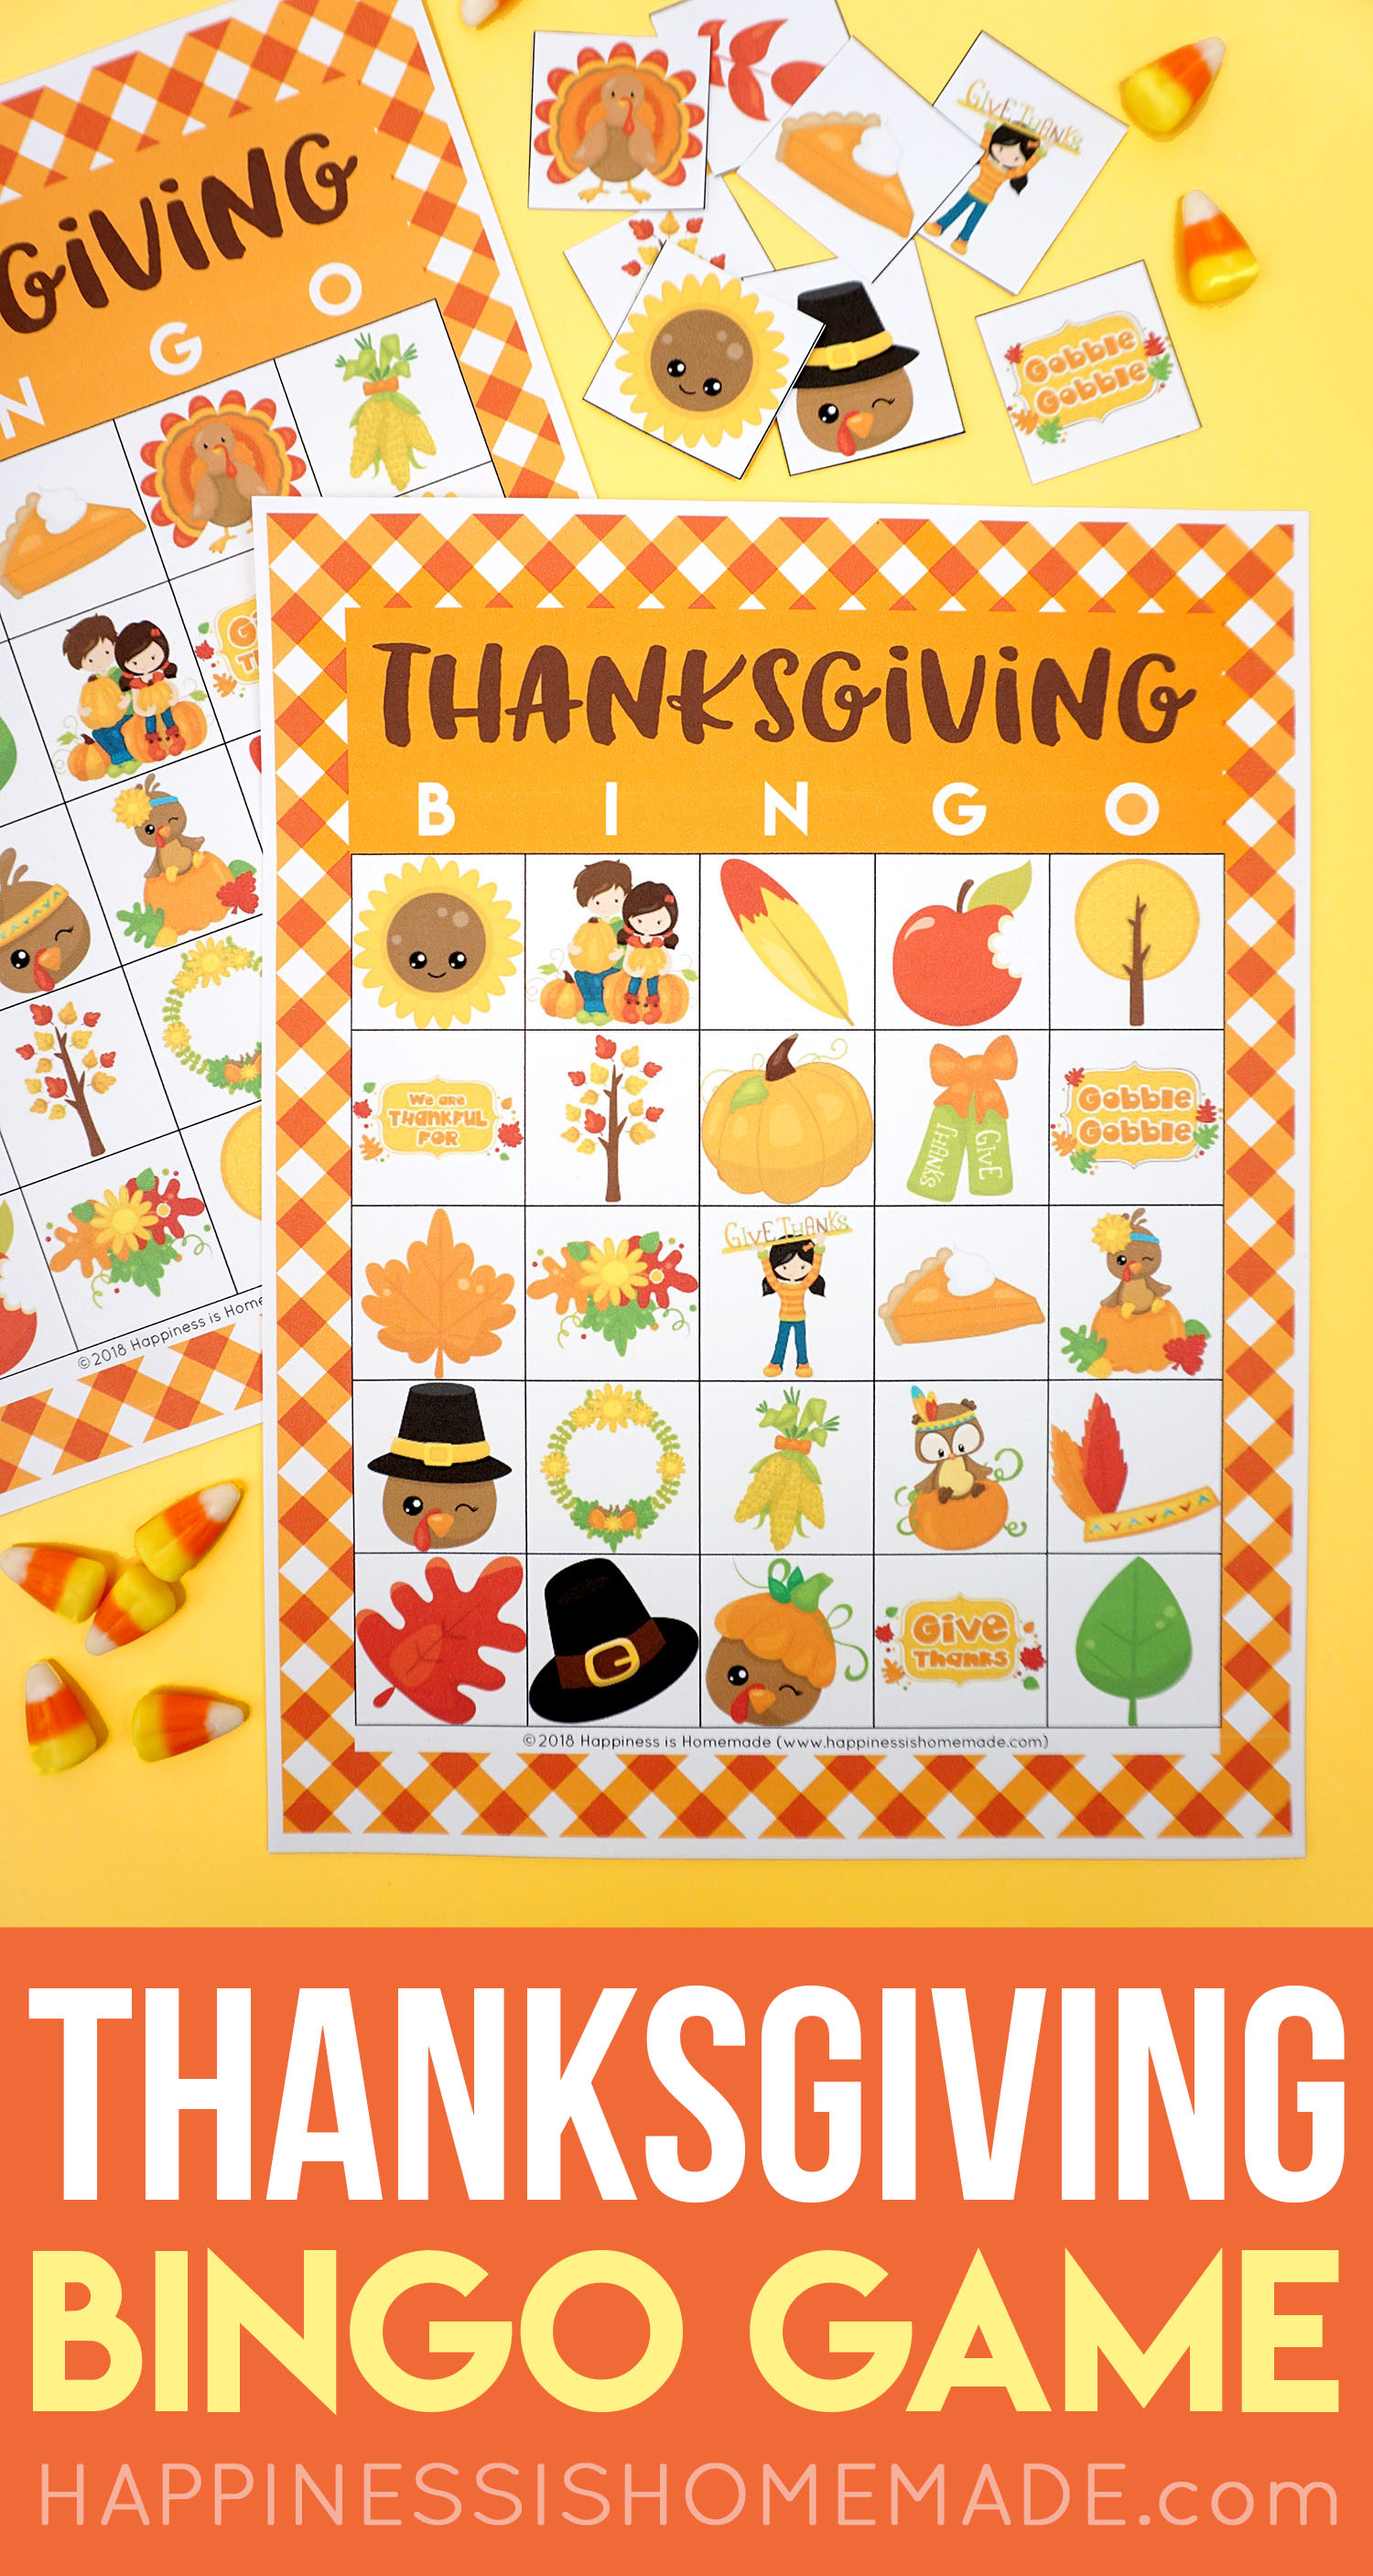 Printable Thanksgiving Bingo Cards - This Thanksgiving Bingo Game is a ton of fun for kids! Perfect for families, classrooms, Scouts, parties, and more!